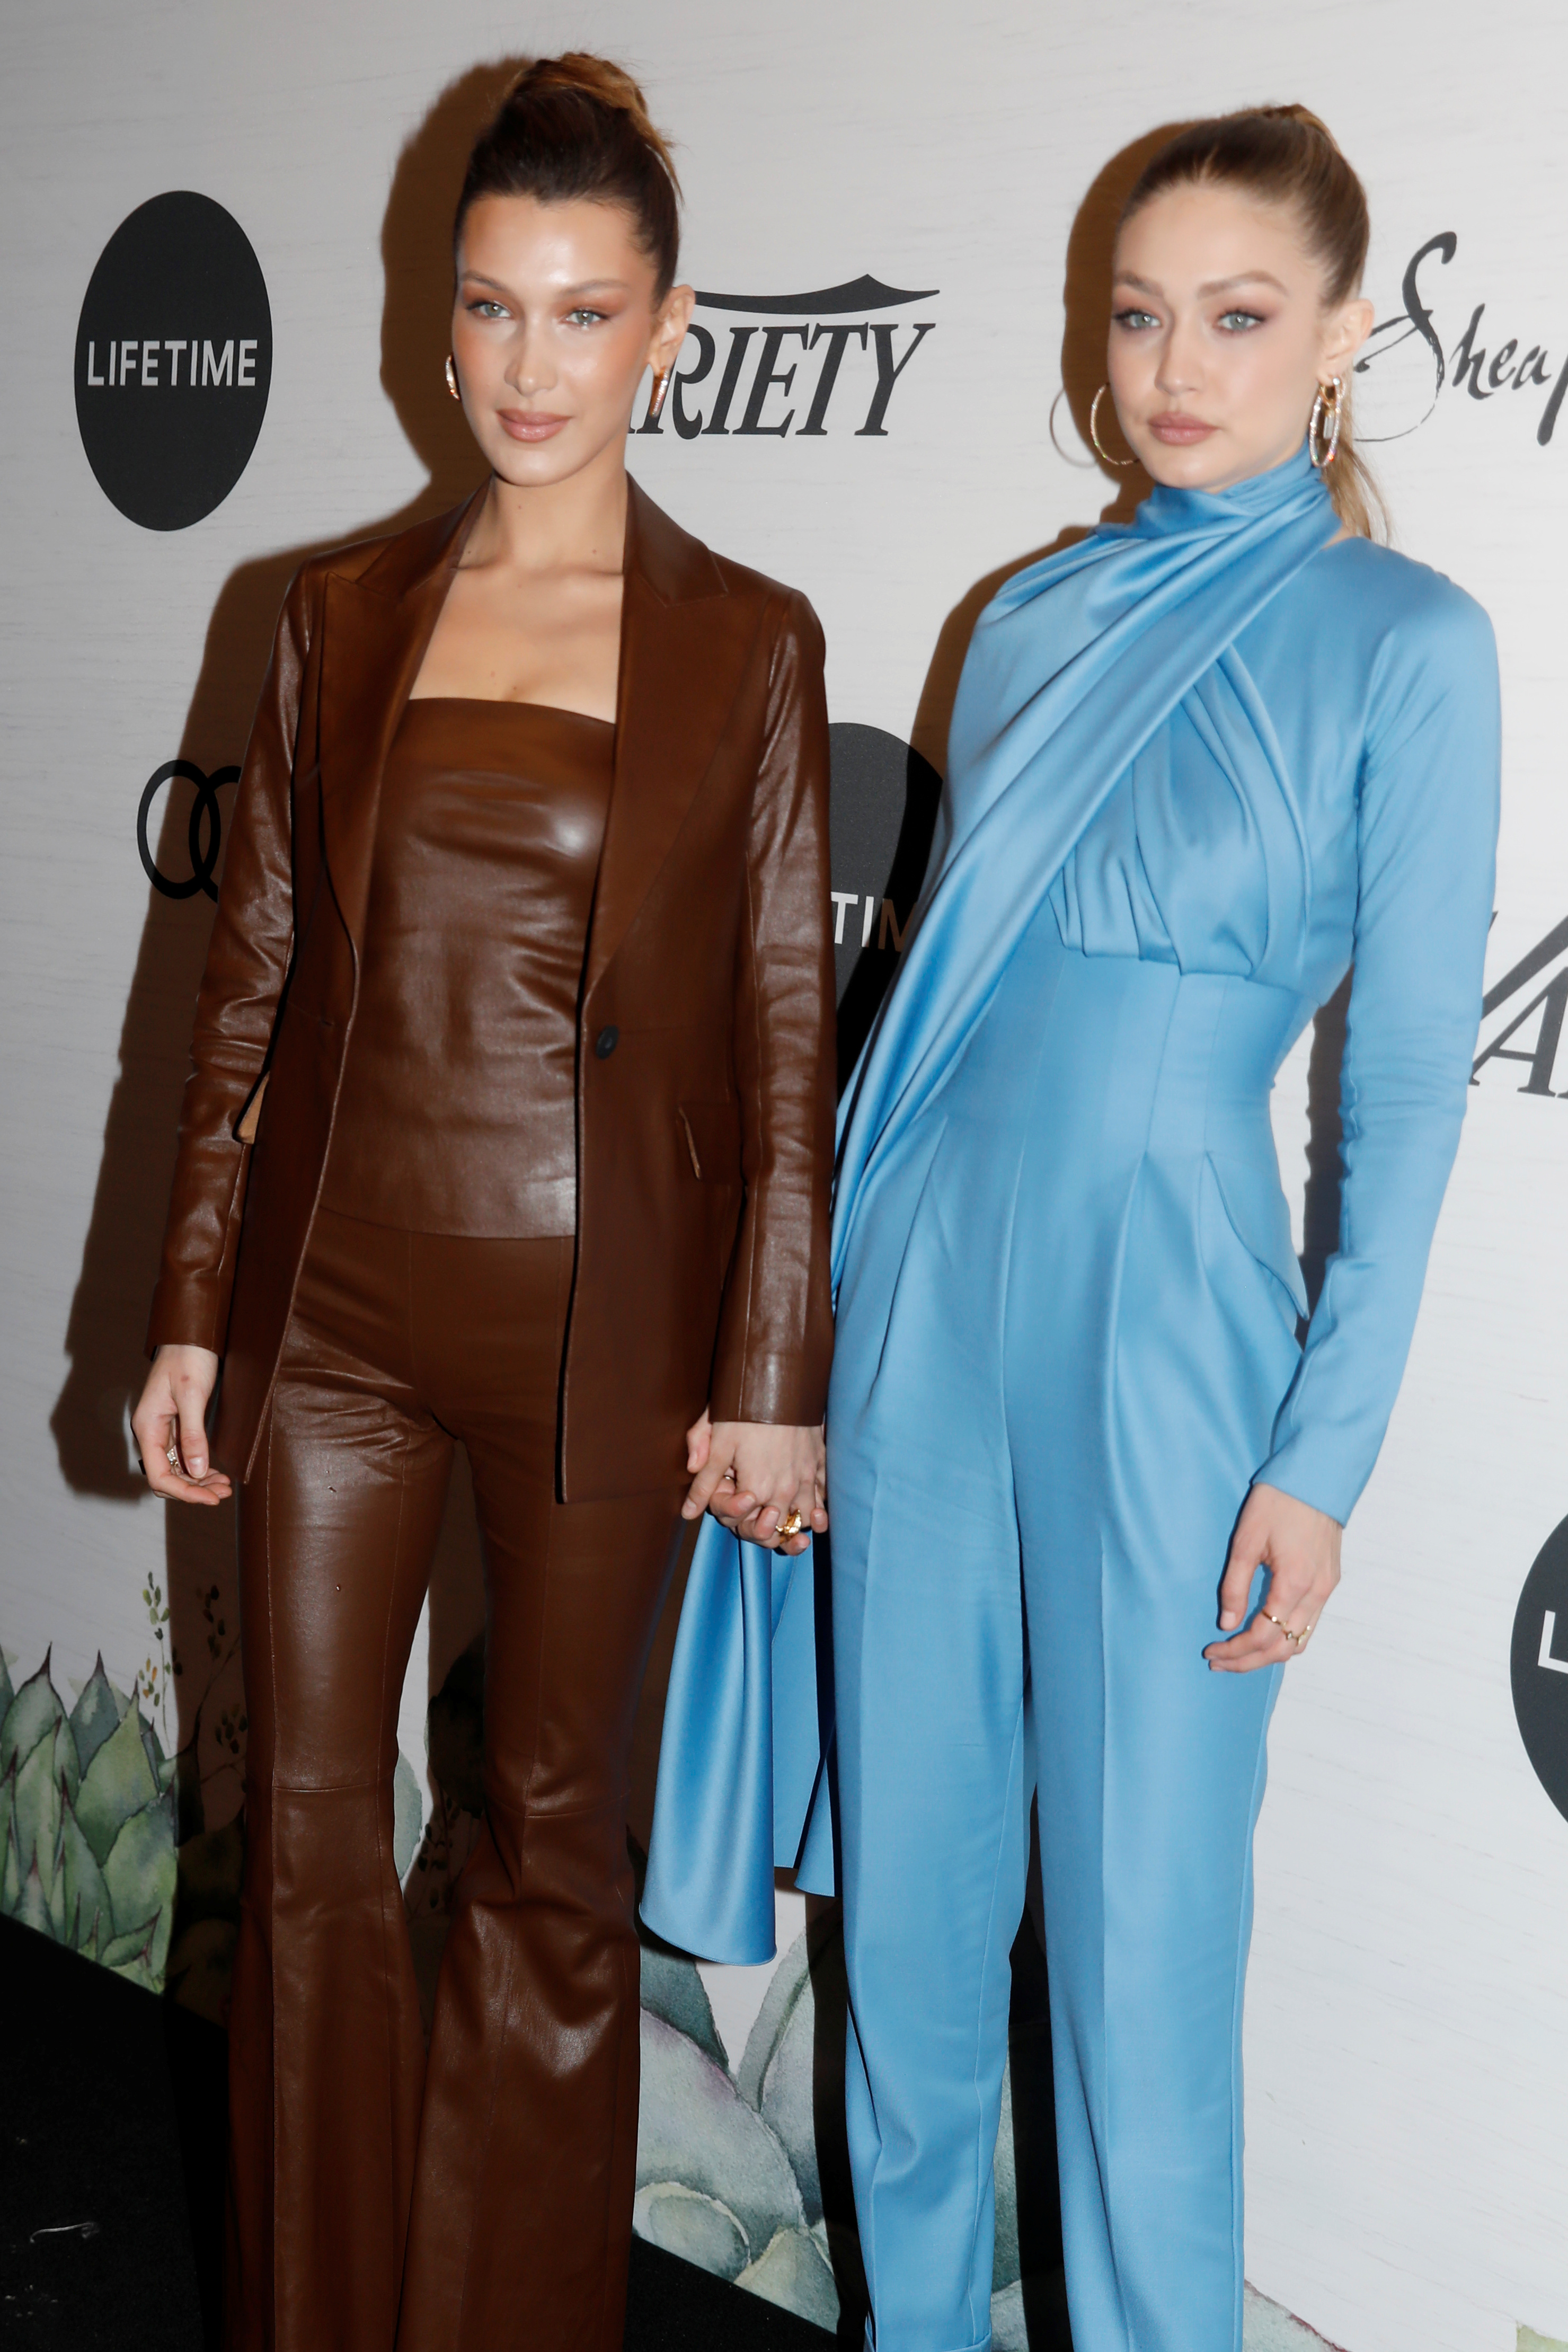 Gigi Hadid and her sister Bella pose on the red carpet at the 2019 Variety's Power of Women event in New York, U.S., April 5, 2019. REUTERS/Shannon Stapleton